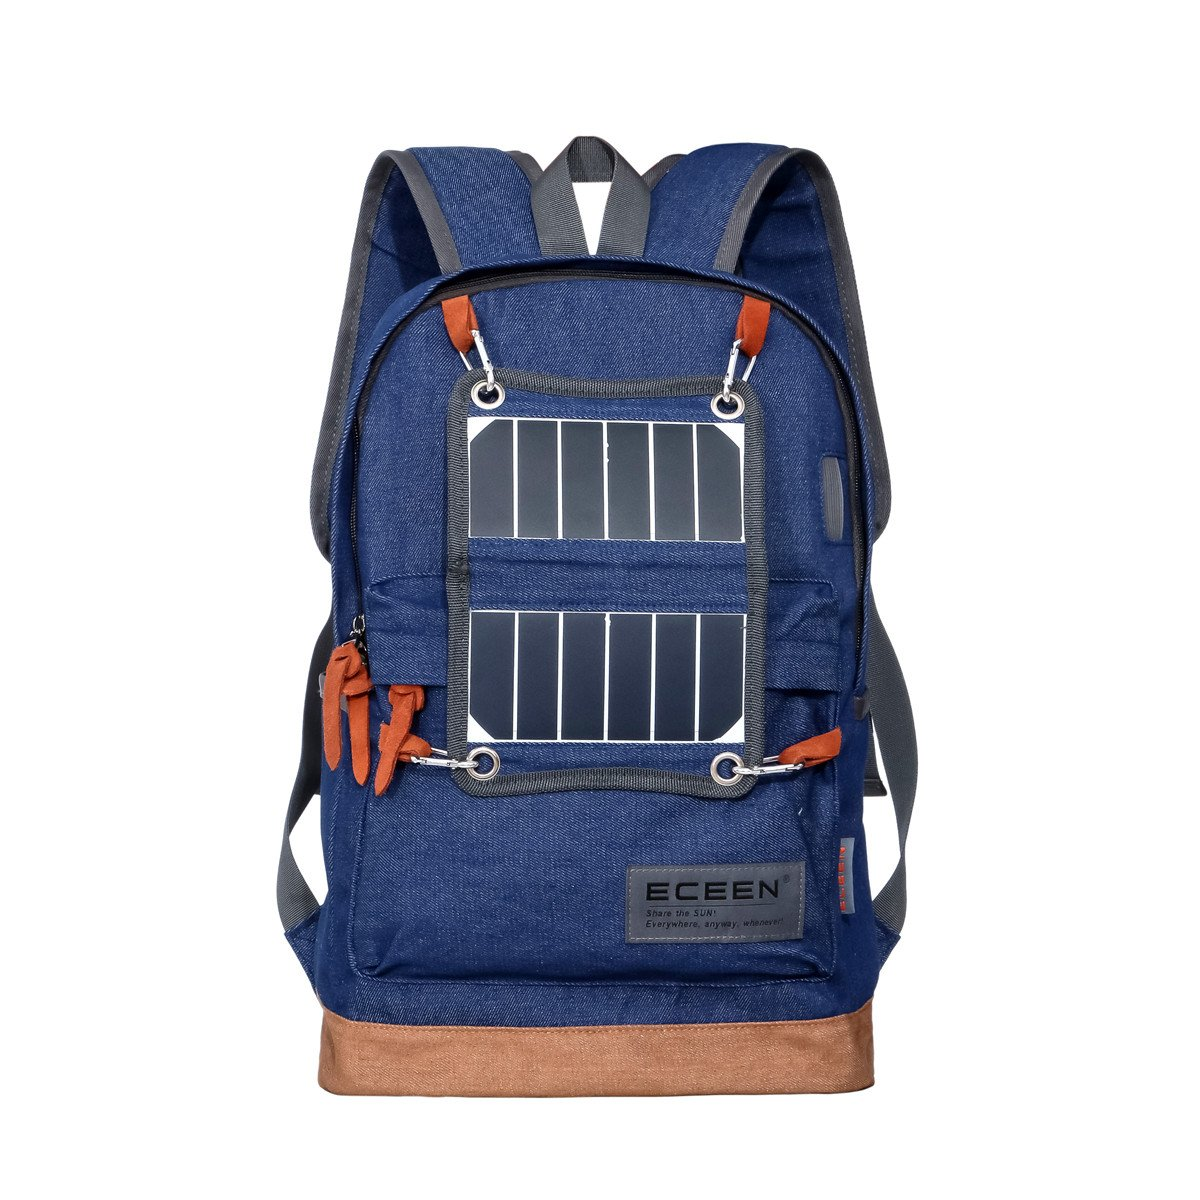 Hiking Daypack Lightweight Backpack with Solar Charger and LED Camping Light for Hiking, Blackouts, Camp-out, Rechargeable Power Bank for 5V USB-Charged Devices